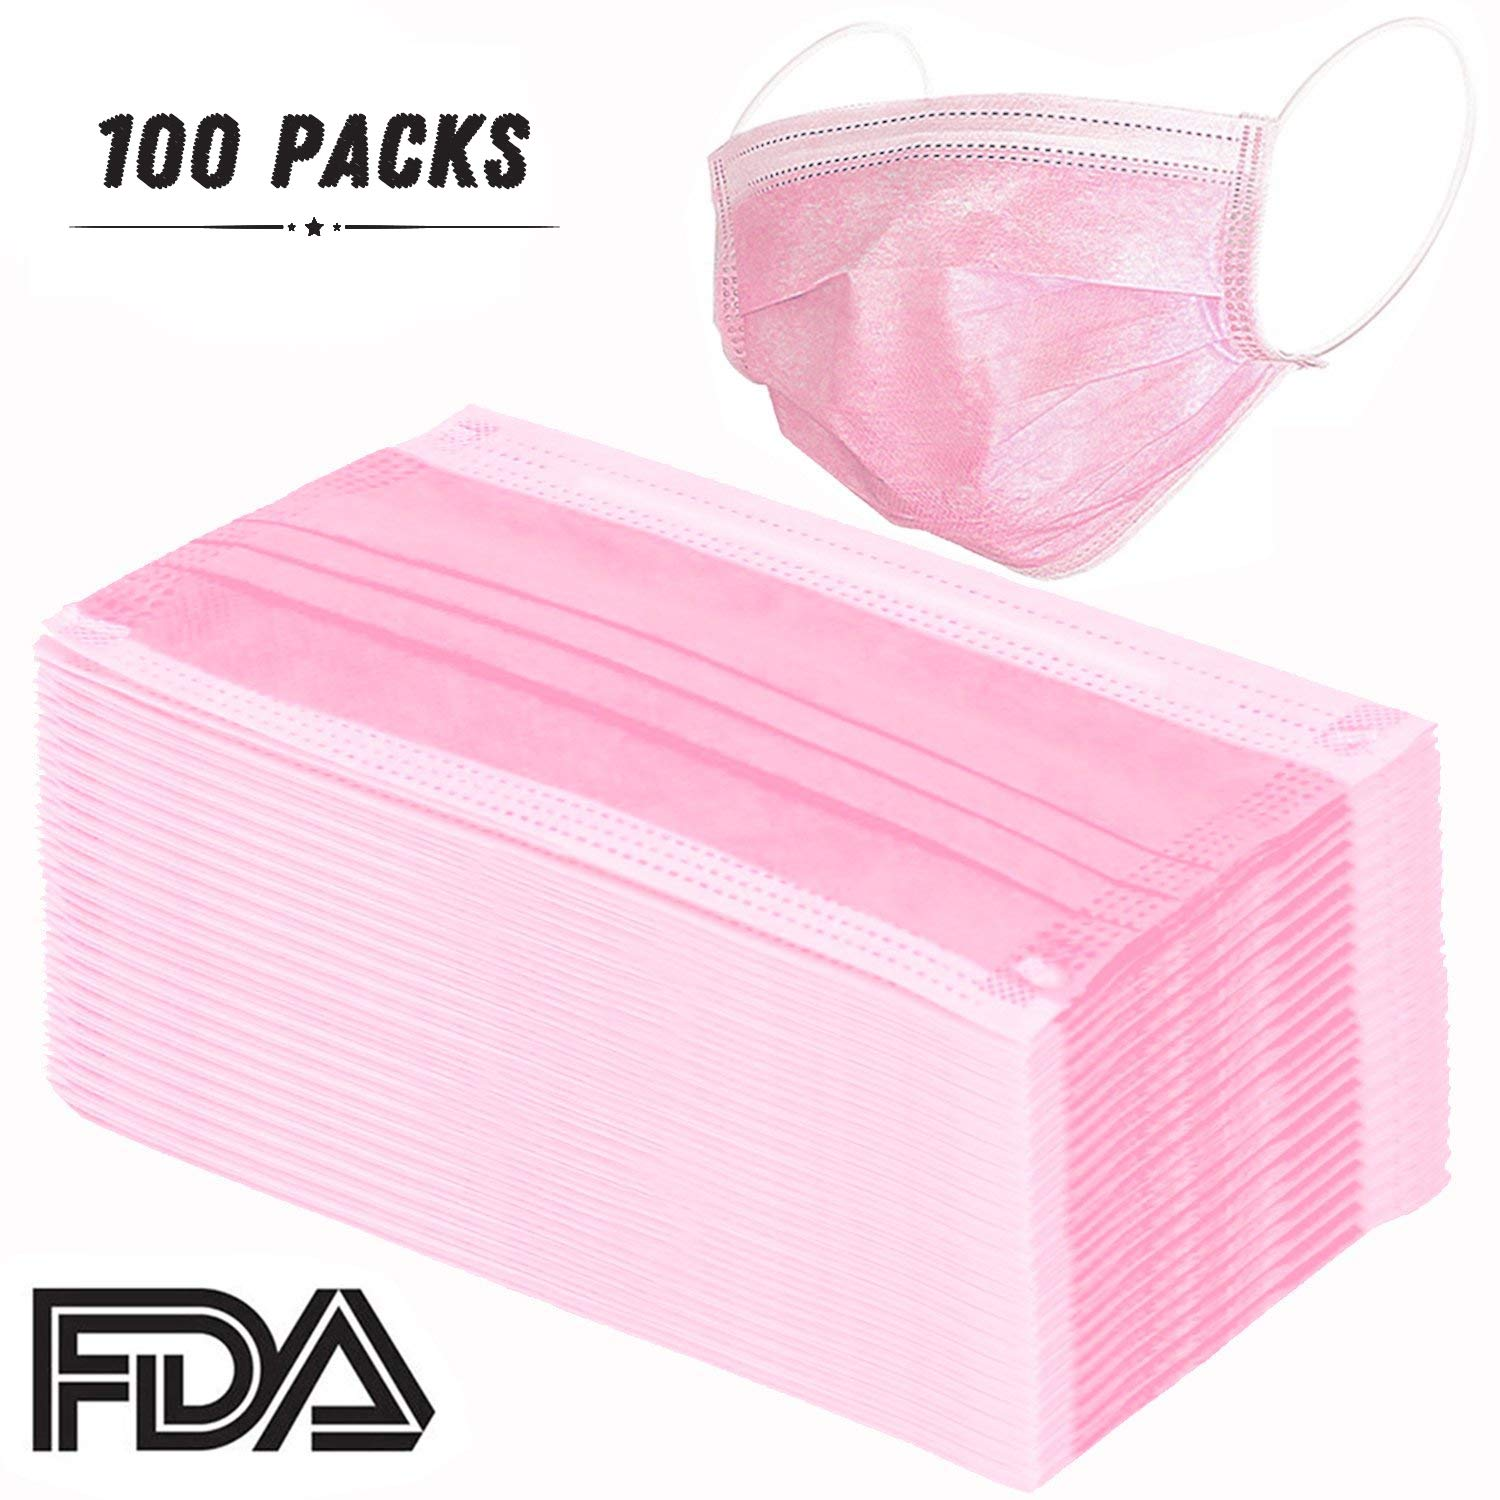 100 Pcs Disposable Earloop Face Masks Dental Surgical Hypoallergenic Breathability Comfort-Great for People with Allergies and The Flu(Pink)